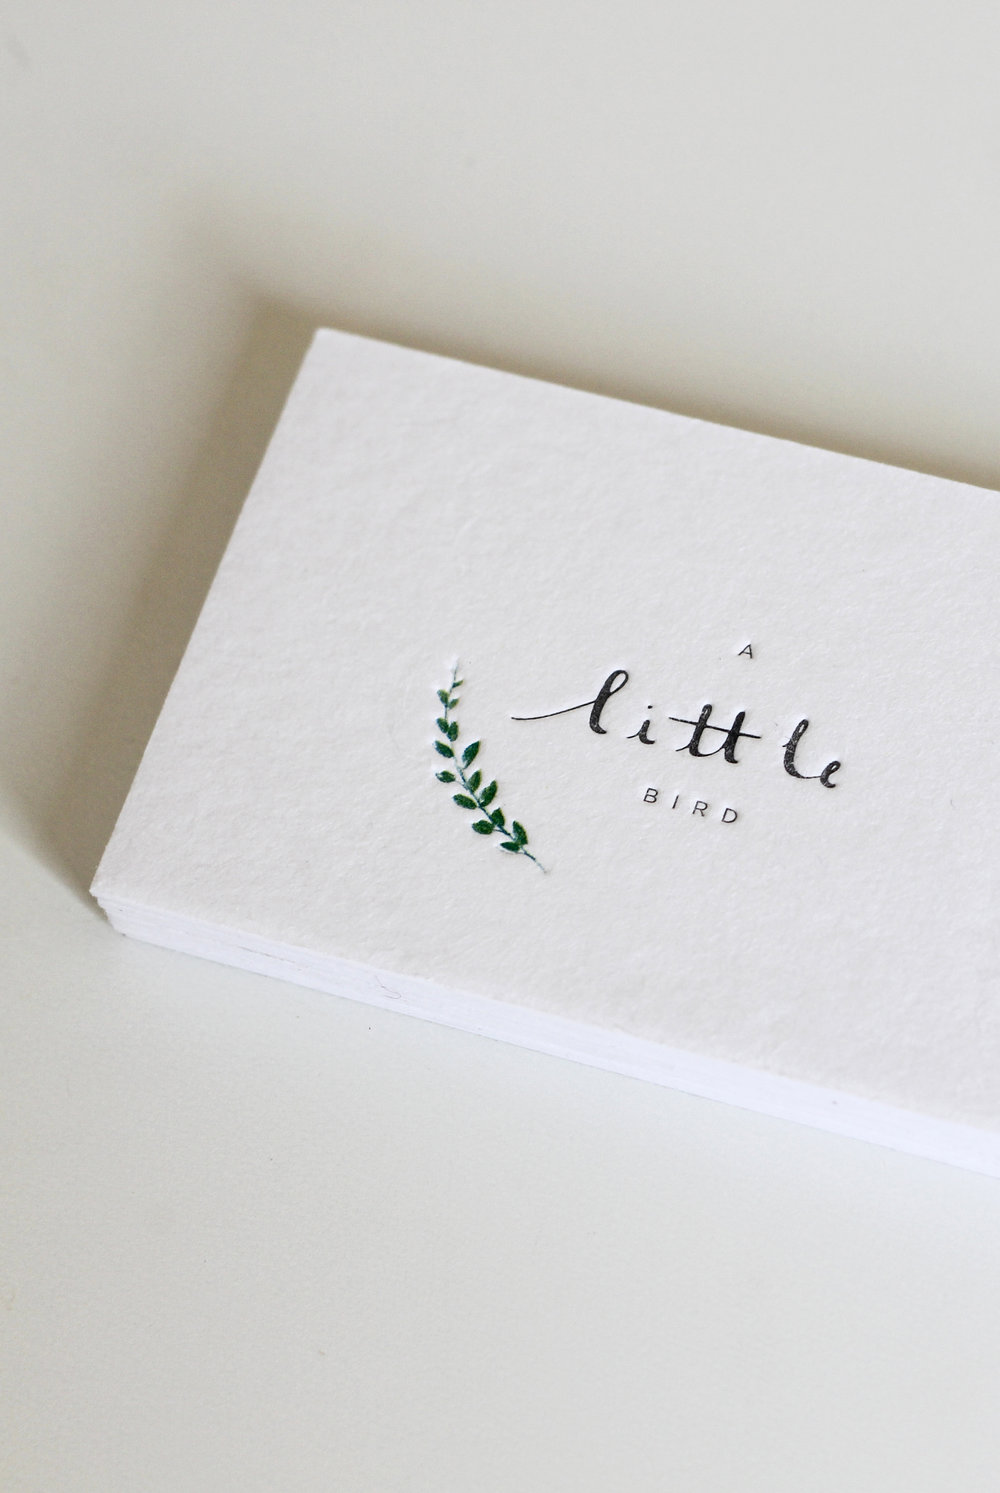 A Little bird, branding & print design